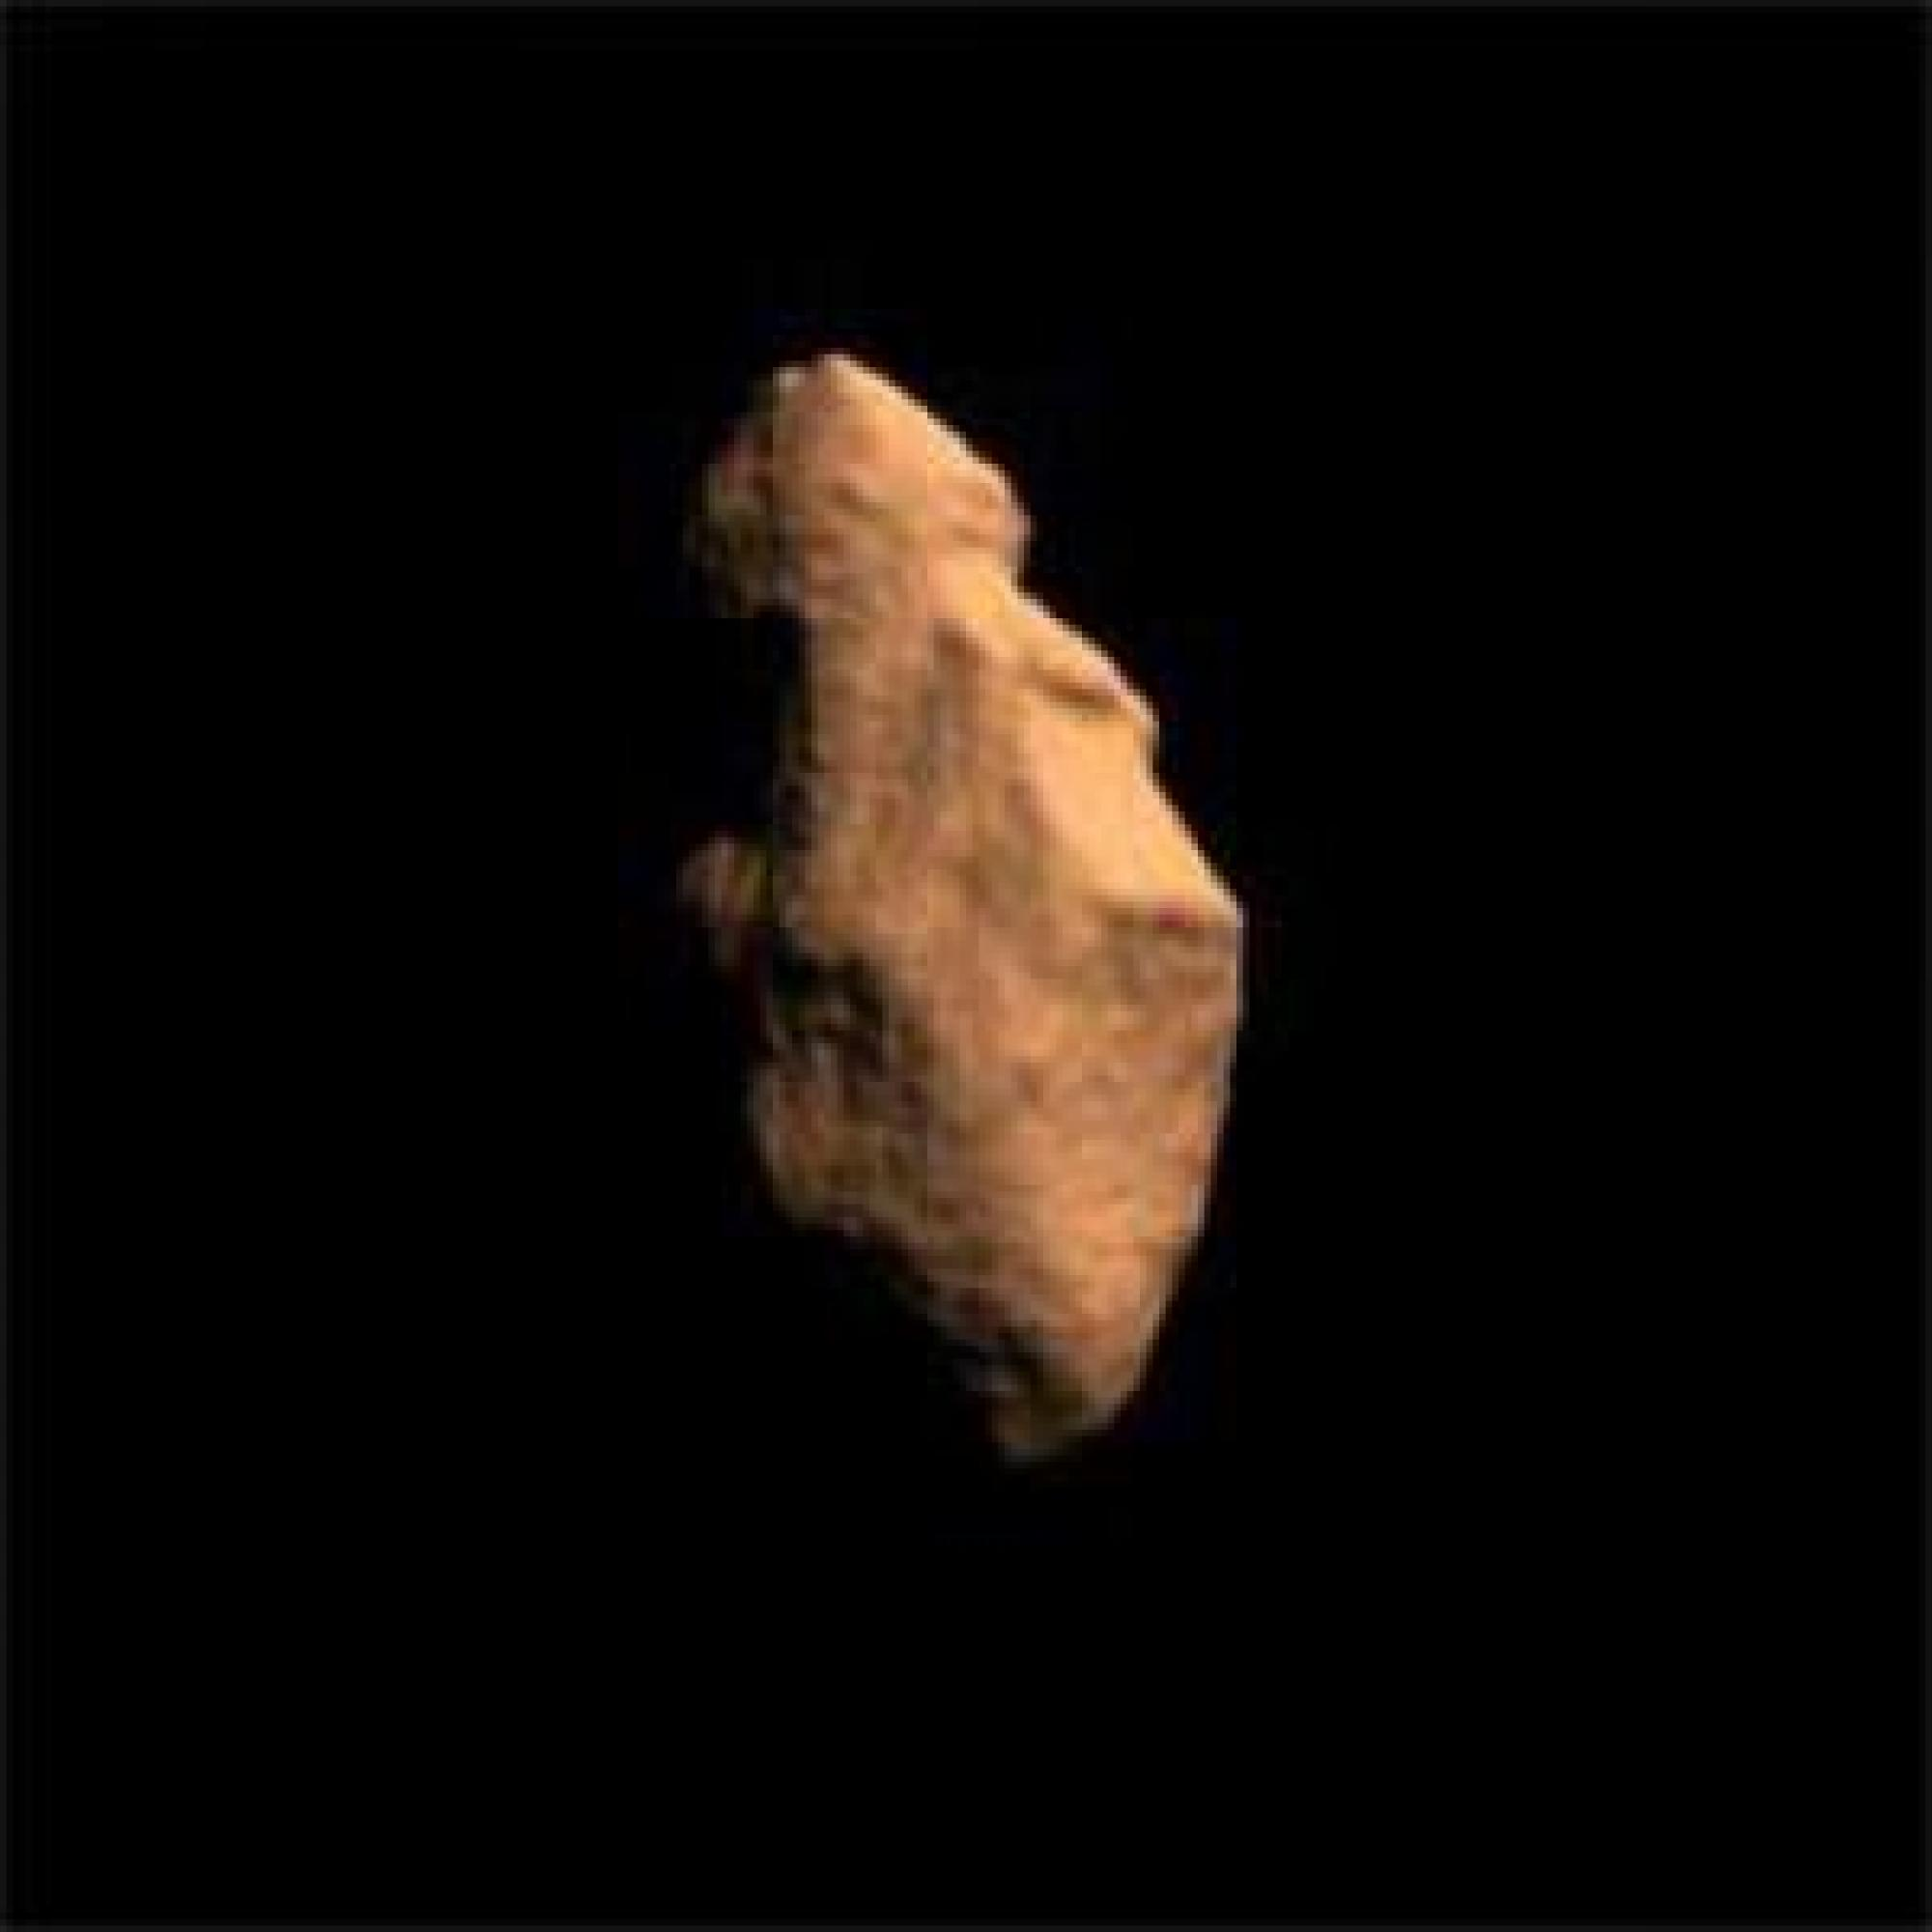 Artist's concept of asteroid 4179 Toutatis, which came within 961,000 miles of Earth in 2004.